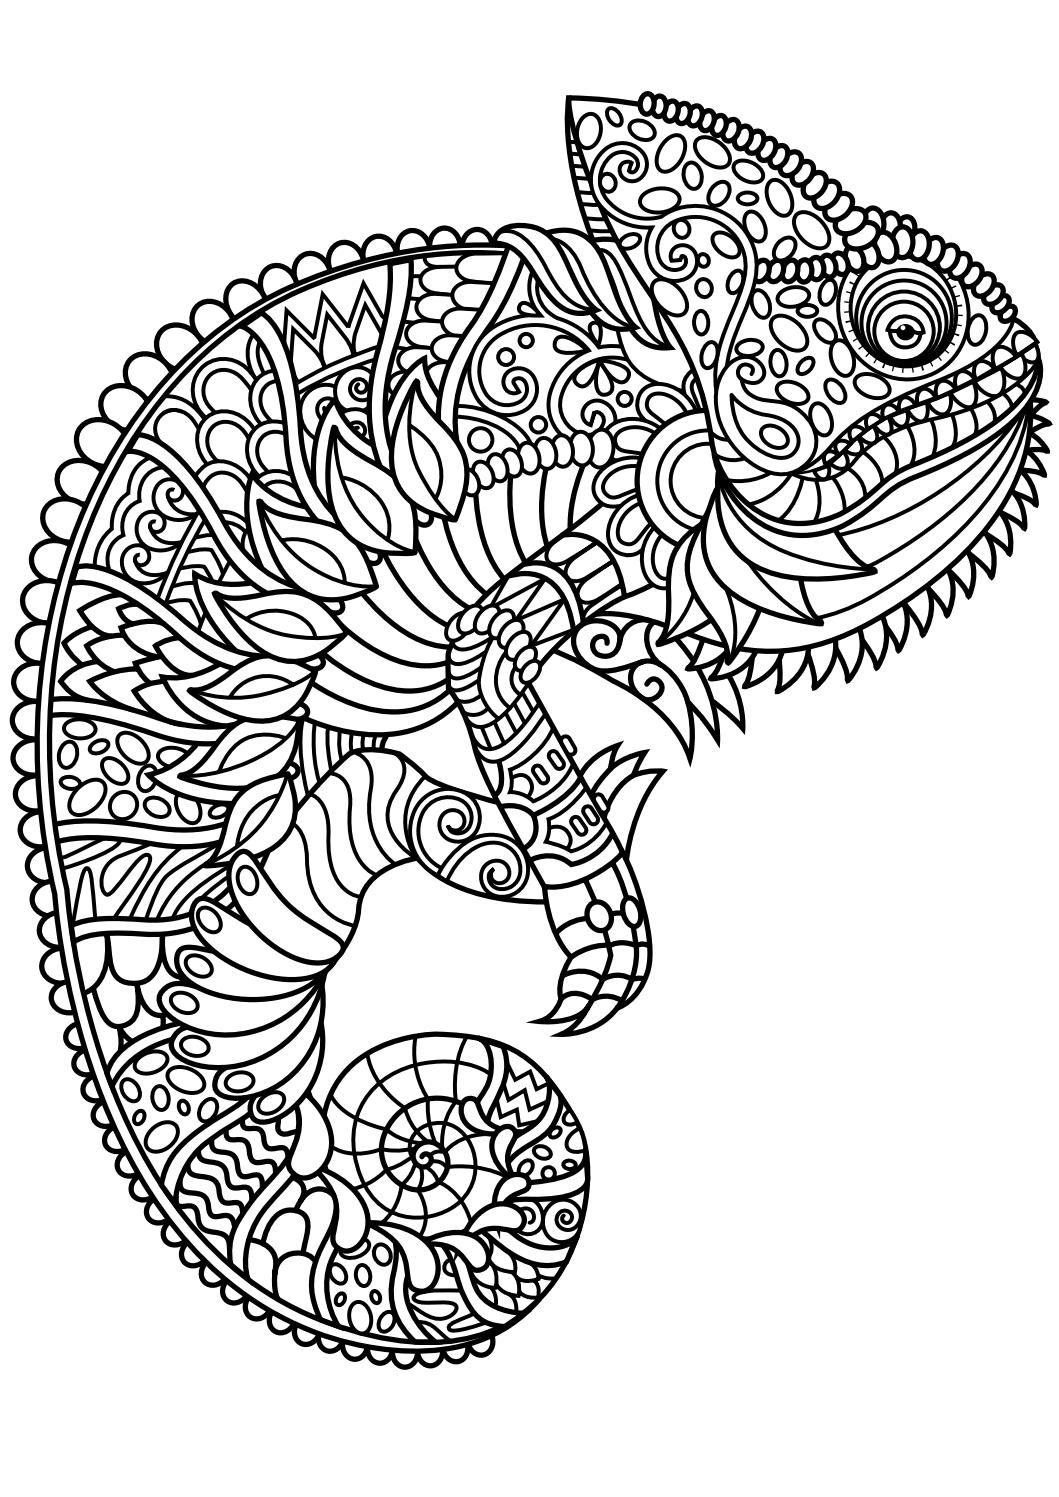 Animal coloring pages pdf | Free adult coloring pages ... | coloring books for adults animals